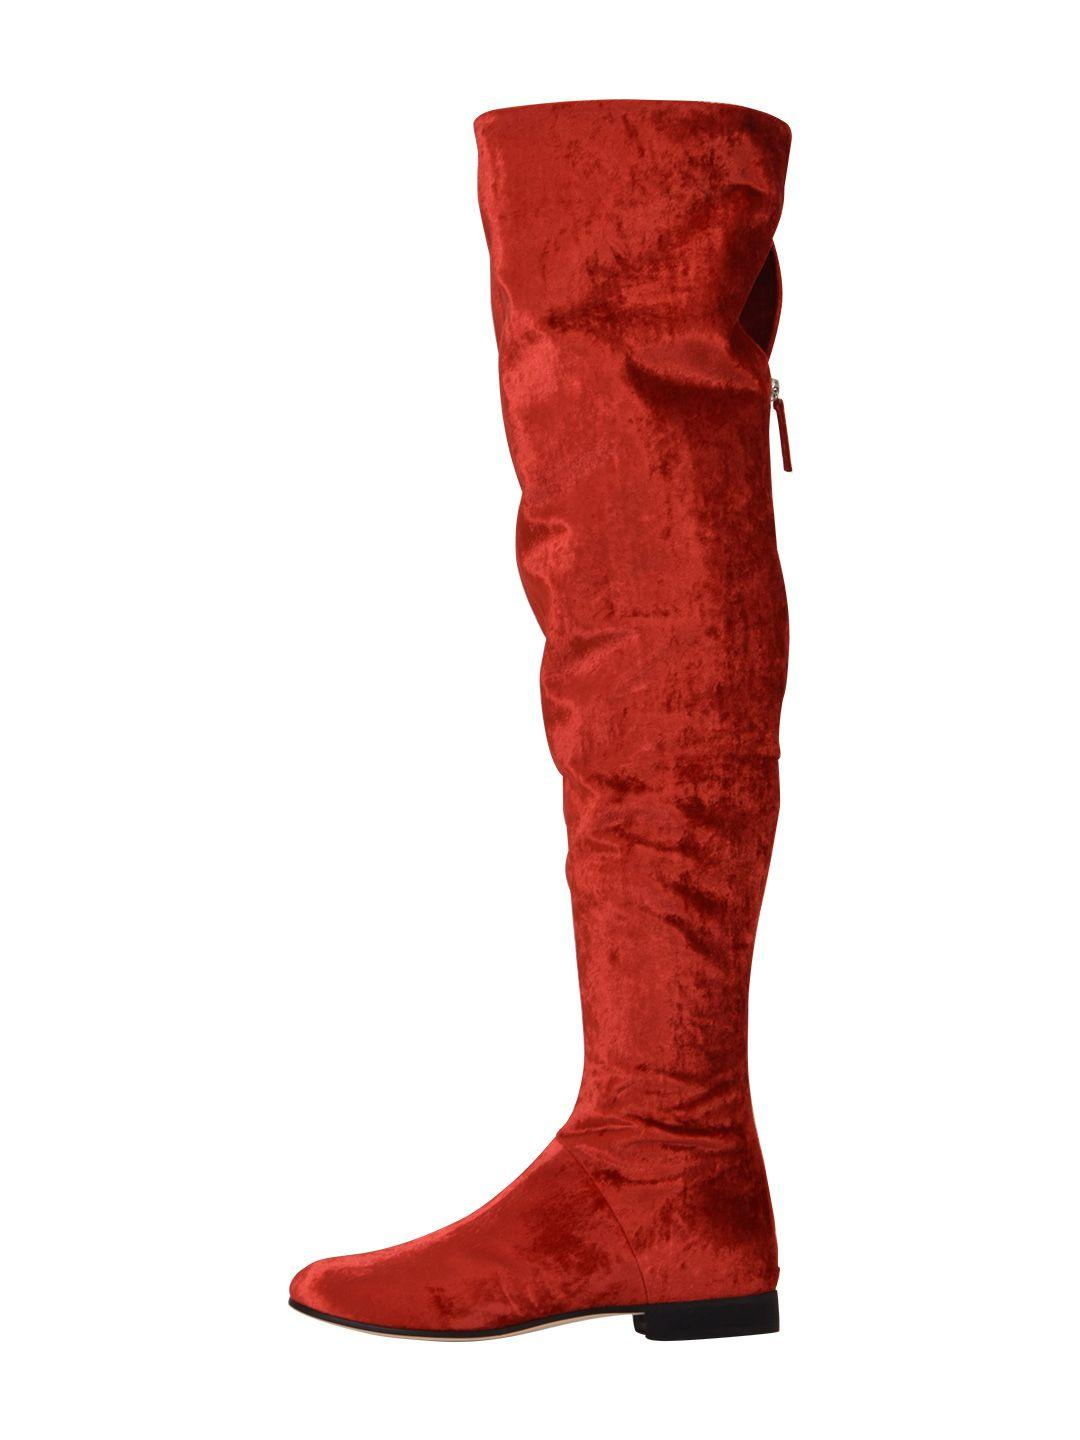 c71a5eaa268 Alberta Ferretti Velvet Over-The-Knee Boots In Red